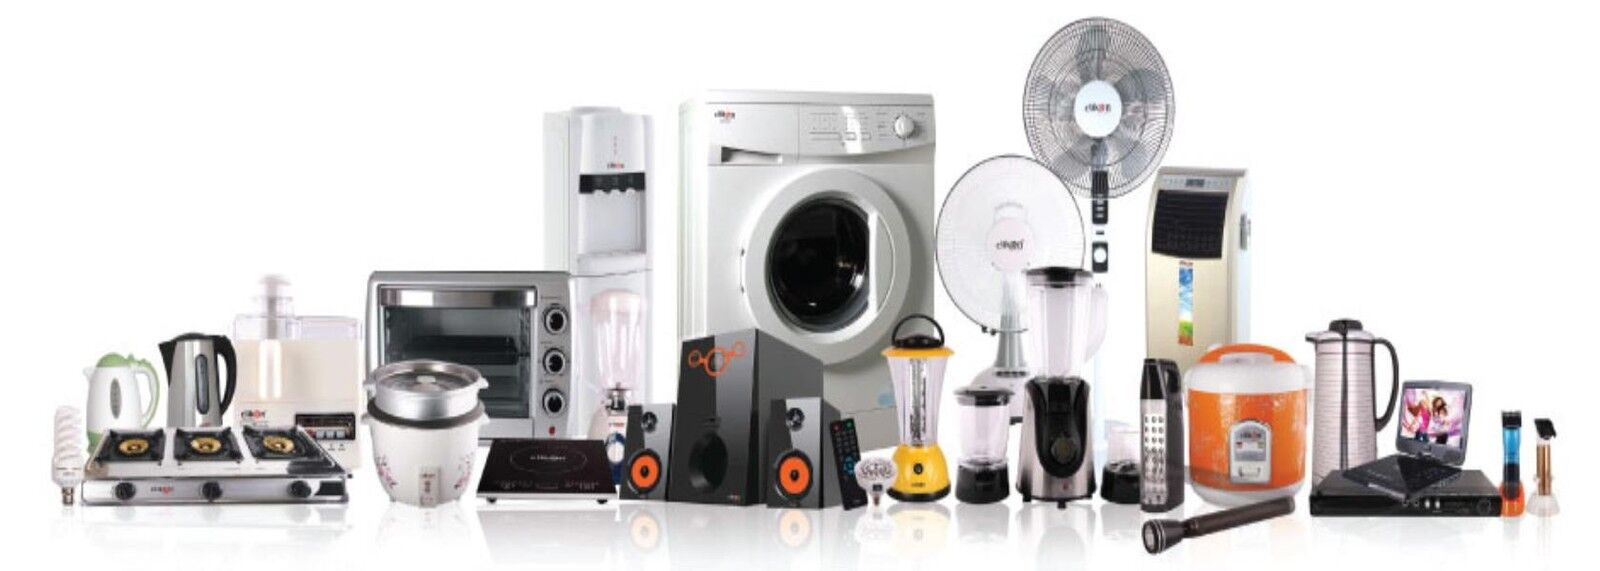 Home Appliances Australia